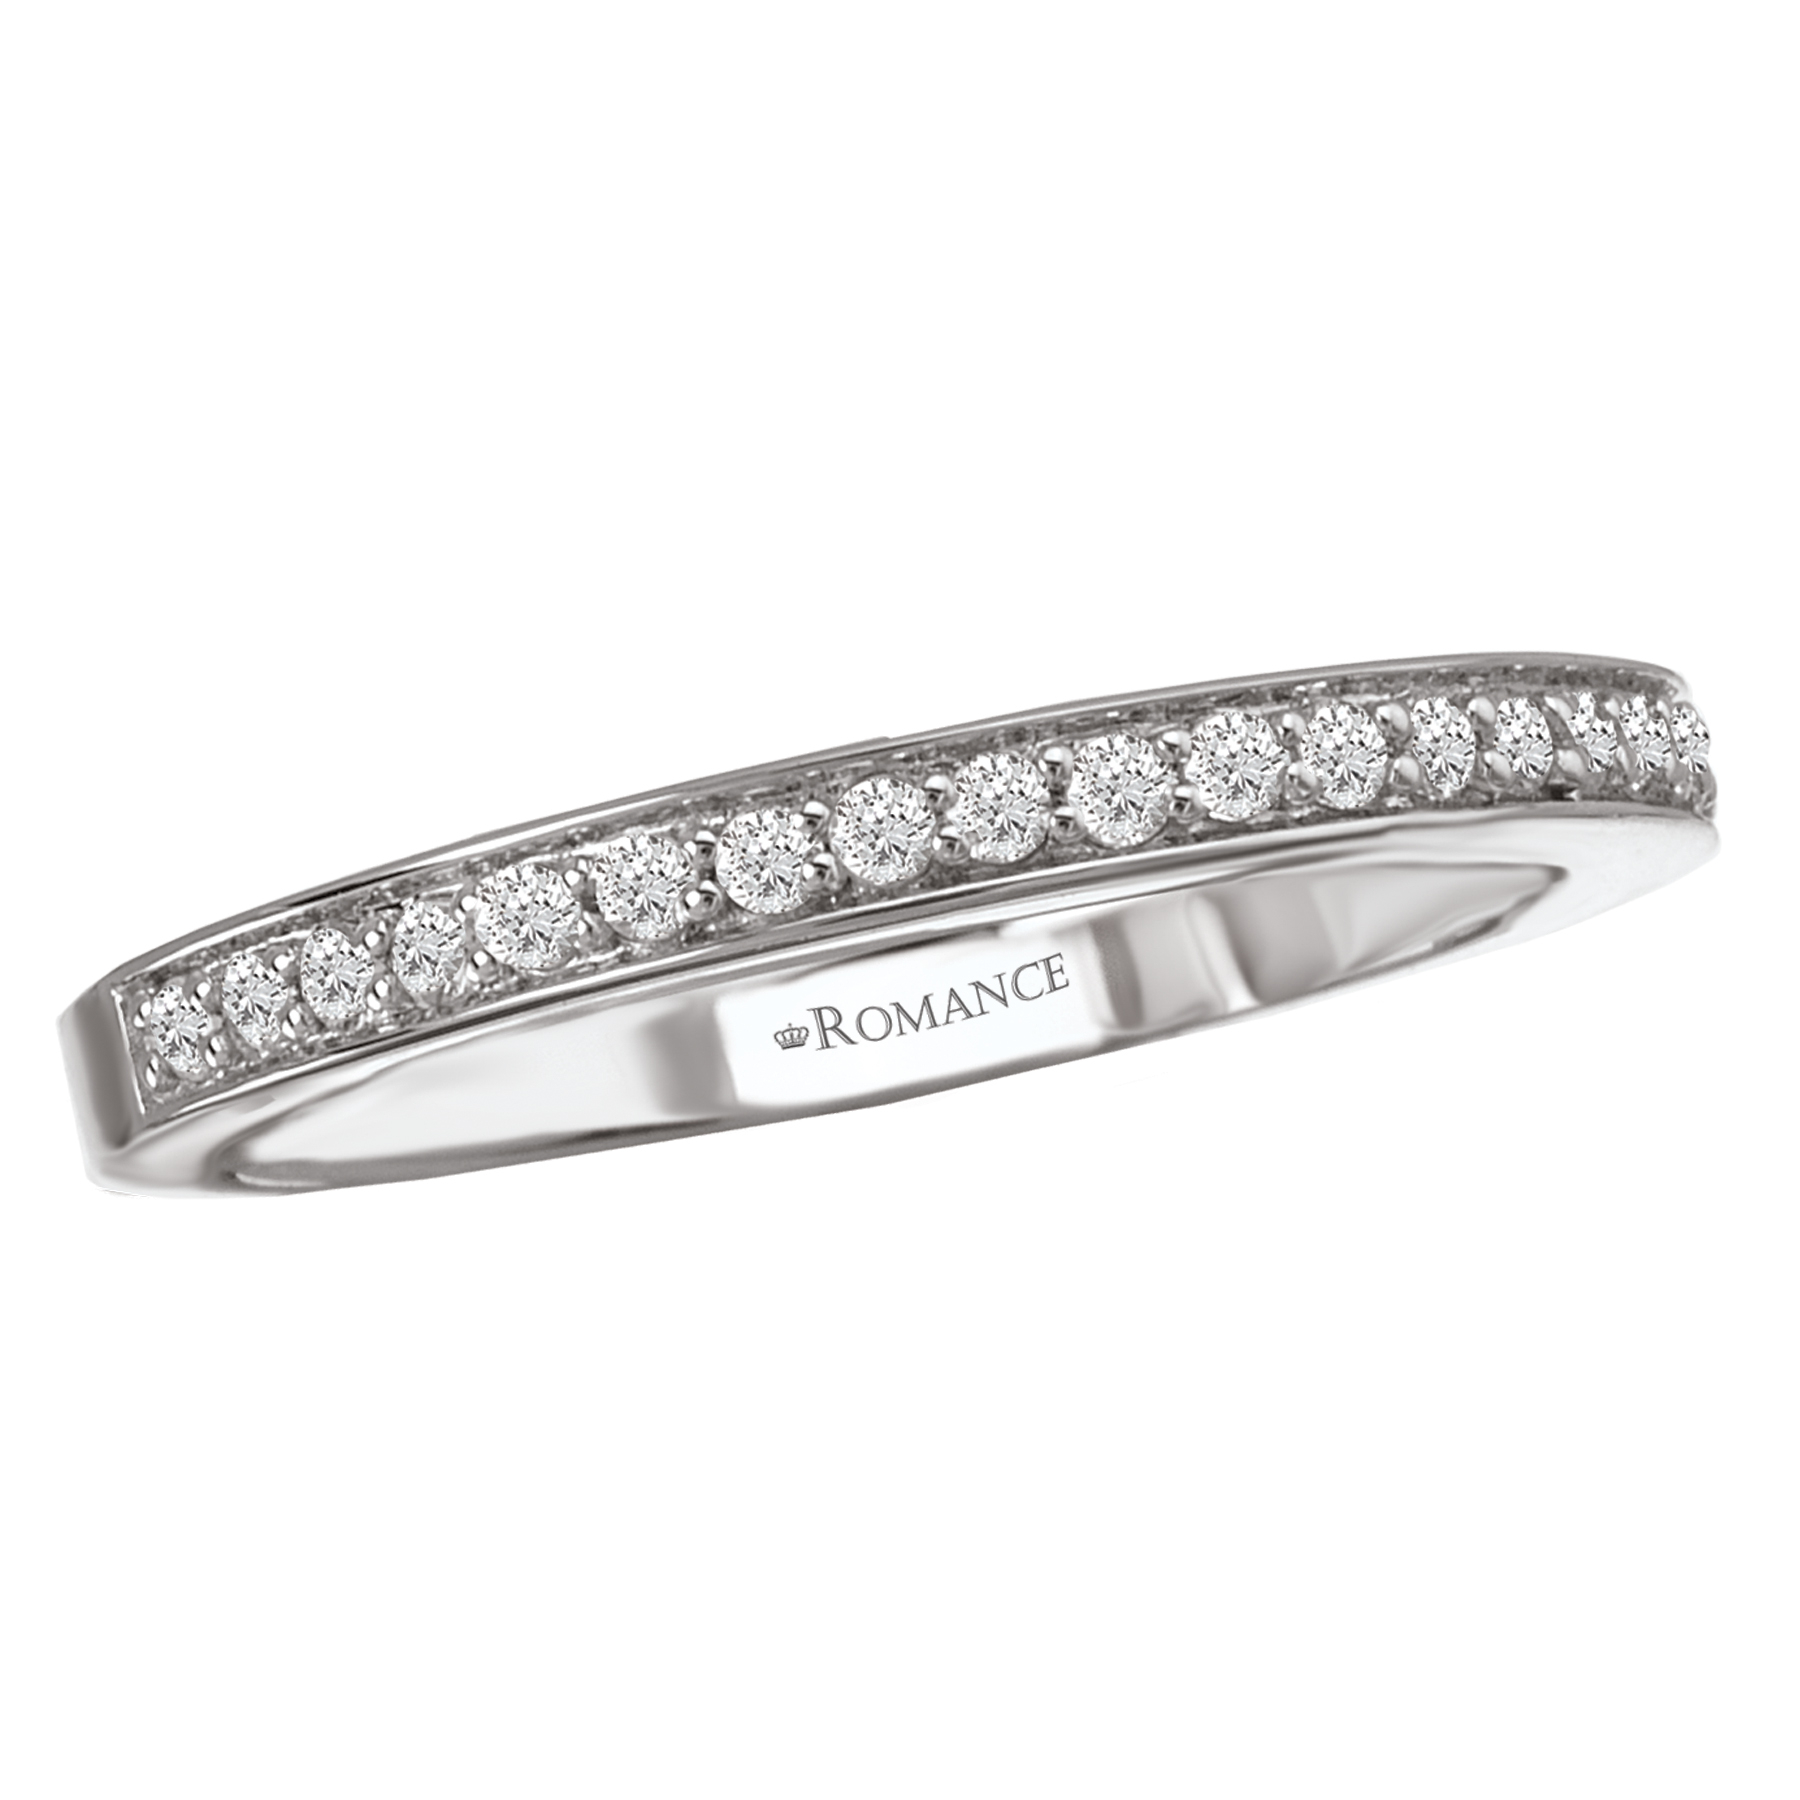 Romance Wedding Bands 117481-W product image